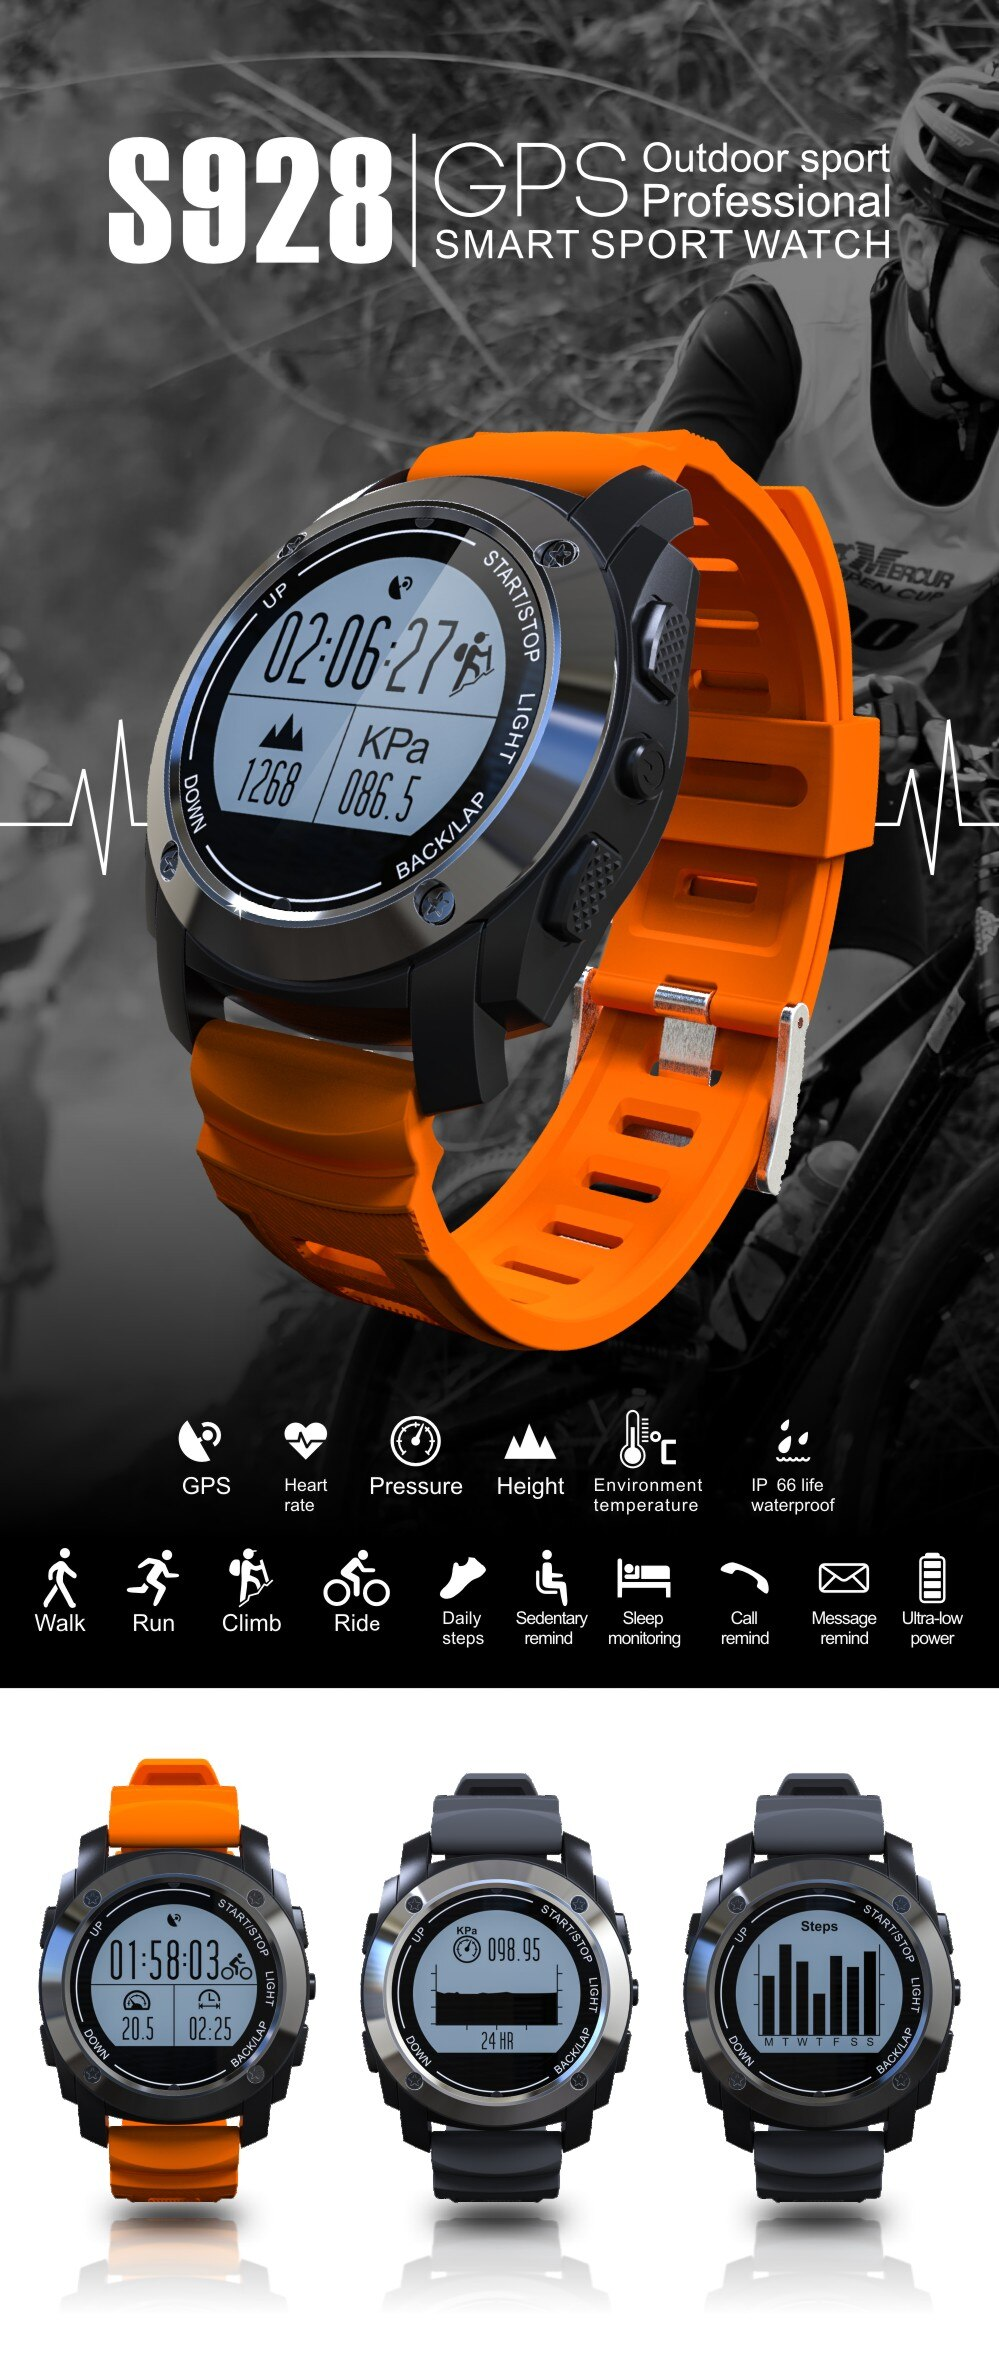 Smart S928 GPS Smart Watch Outdoor Sports Bluetooth SmartWatch IP66 Waterproof Heart Rate Monitor Pedometer Watch Pressure for